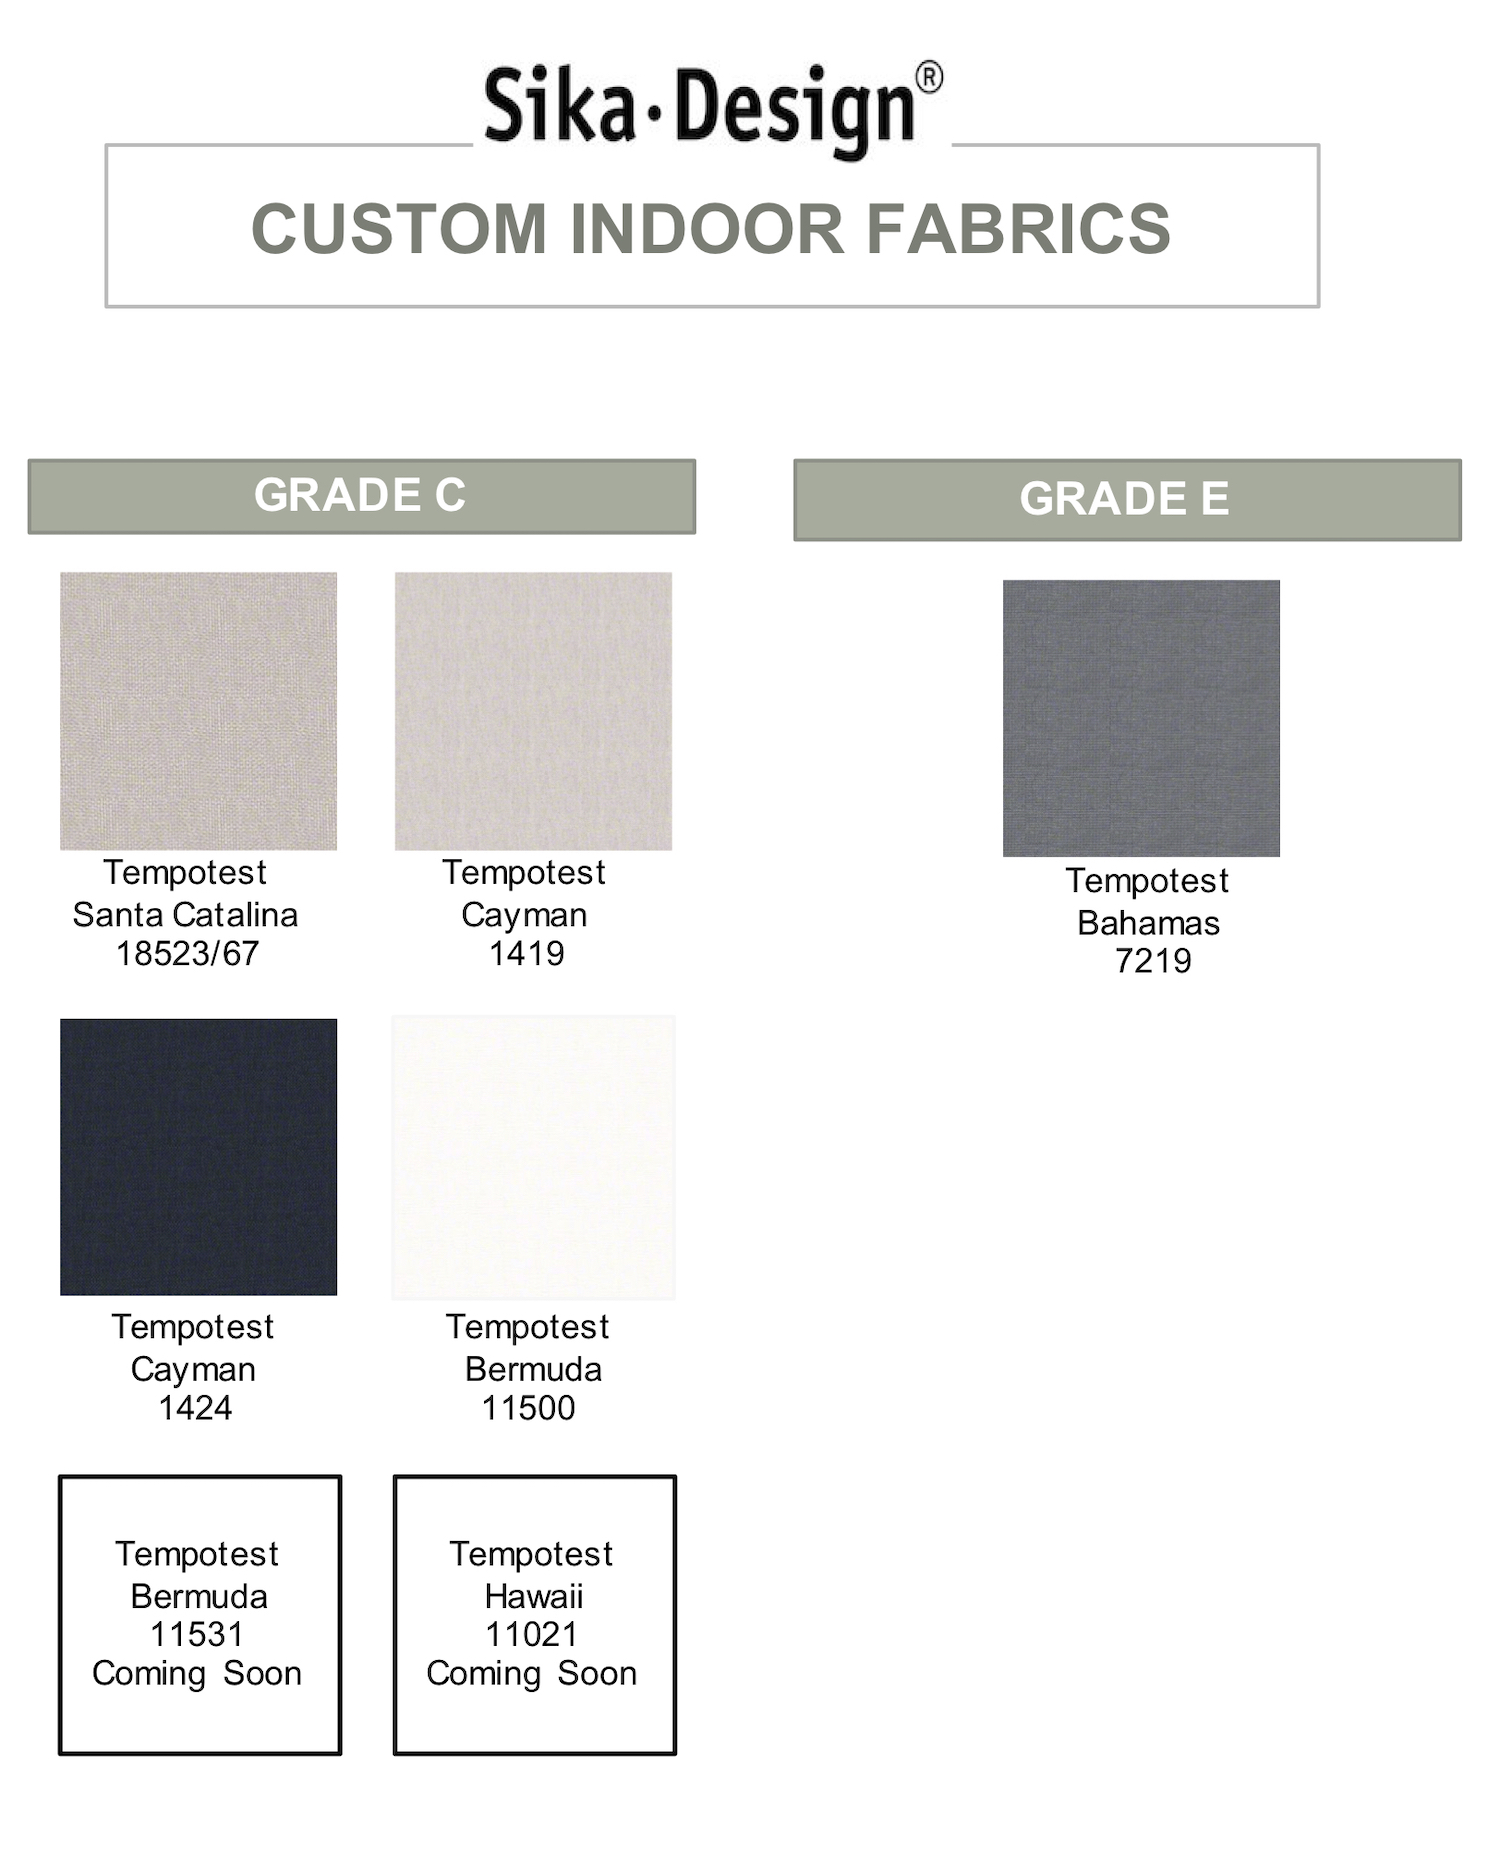 Sika Design Custom Indoor Fabrics